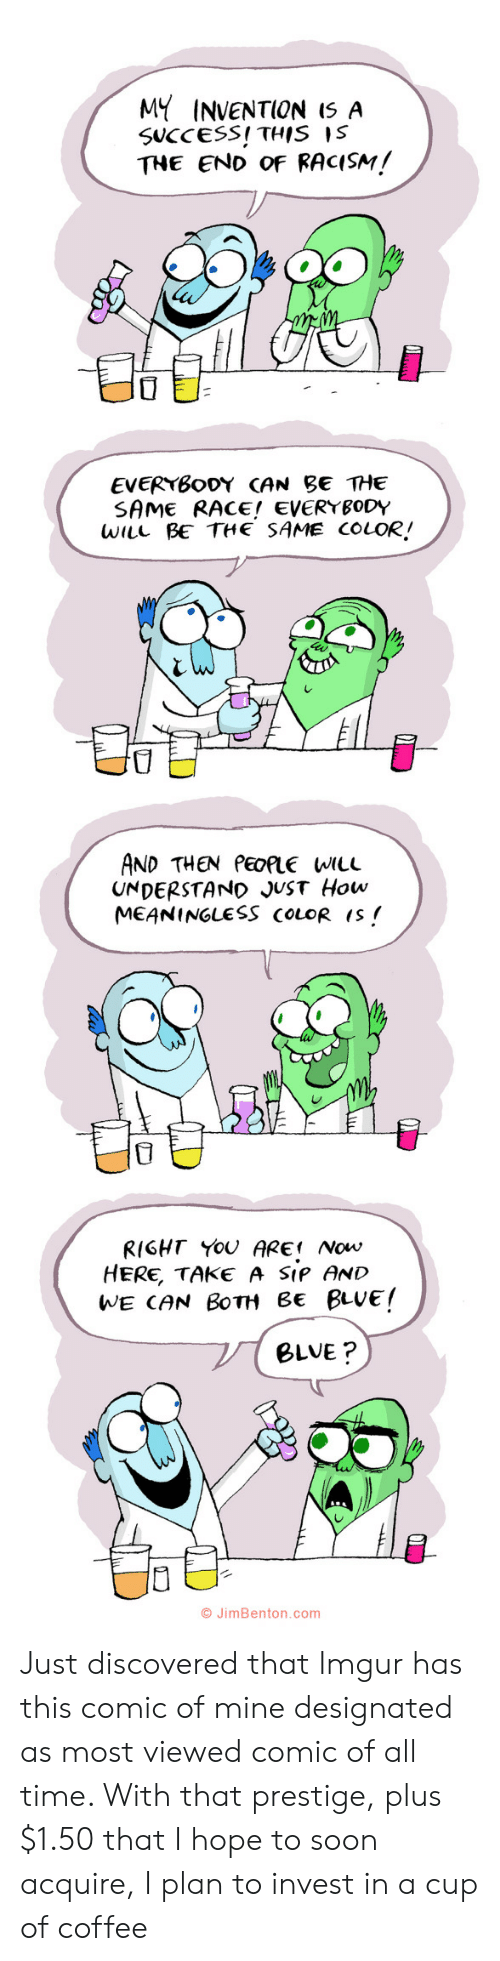 invention: MY INVENTION I5 A  SUCCESS! THIS IS  THE END OF RACISM!  EVERYBODY CAN BE THE  SAME RACE! EVERYBODY  WILL BE THE SAME COLOR!  AND THEN PEOPLE WILL  UNDERSTAND JUST How  MEANINGLESS COLOR IS  RIGHT YOU ARE Now  HERE, TAKE A SIP AND  WE CAN BOTH Be BLUE!  BLVE?  O JimBenton.com  י Just discovered that Imgur has this comic of mine designated as most viewed comic of all time. With that prestige, plus $1.50 that I hope to soon acquire, I plan to invest in a cup of coffee